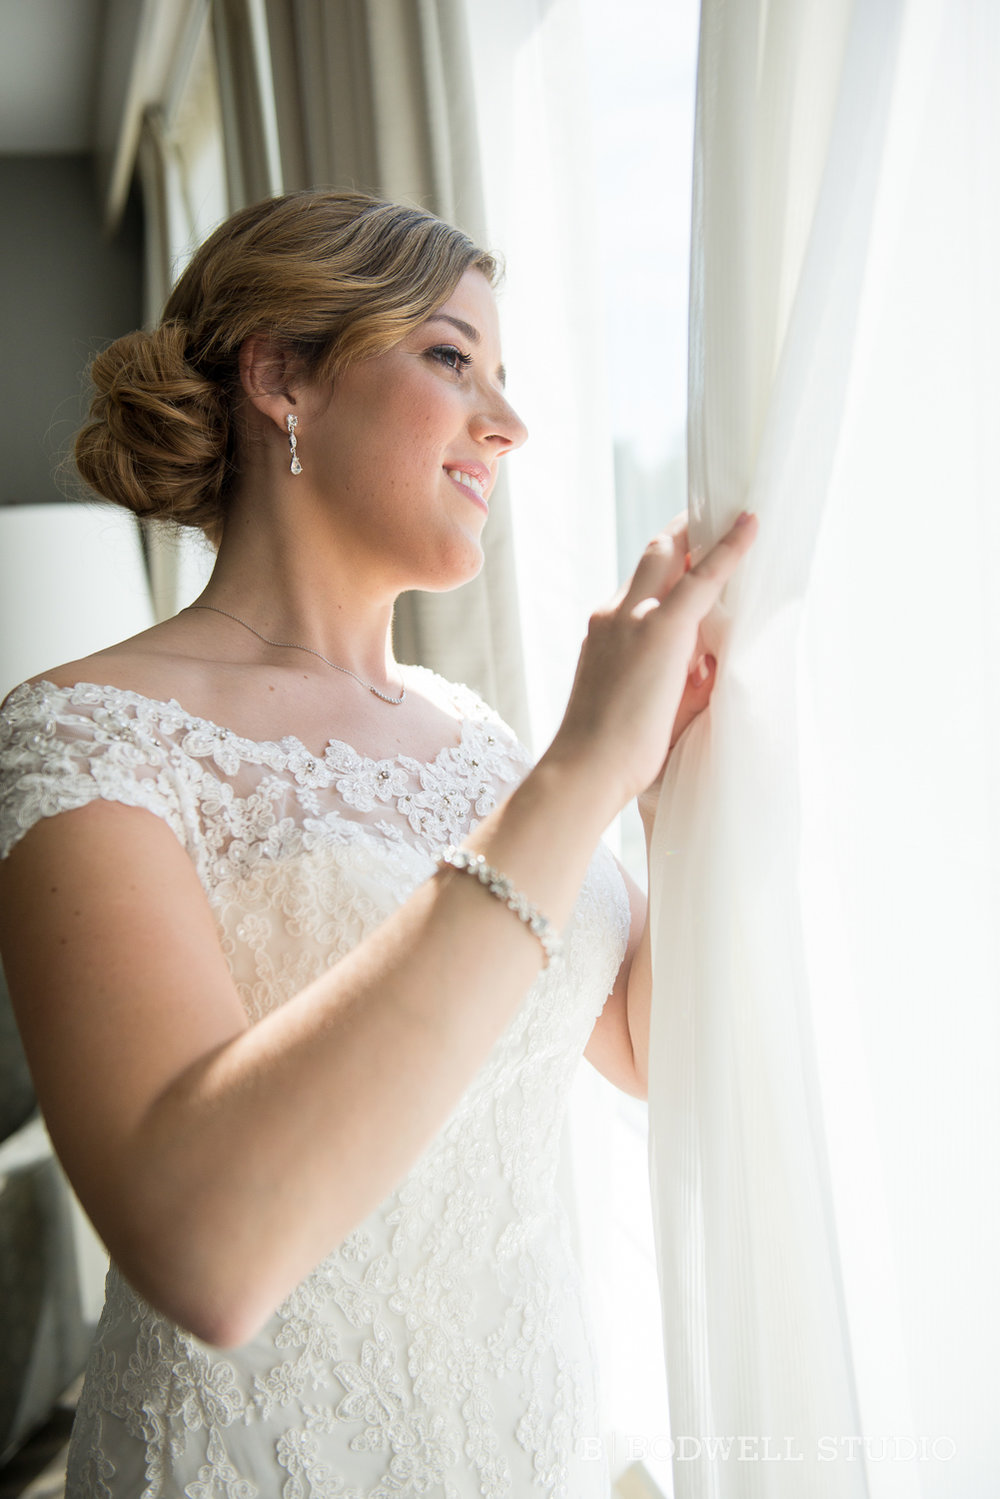 Dicks_Wedding_Blog_006.jpg